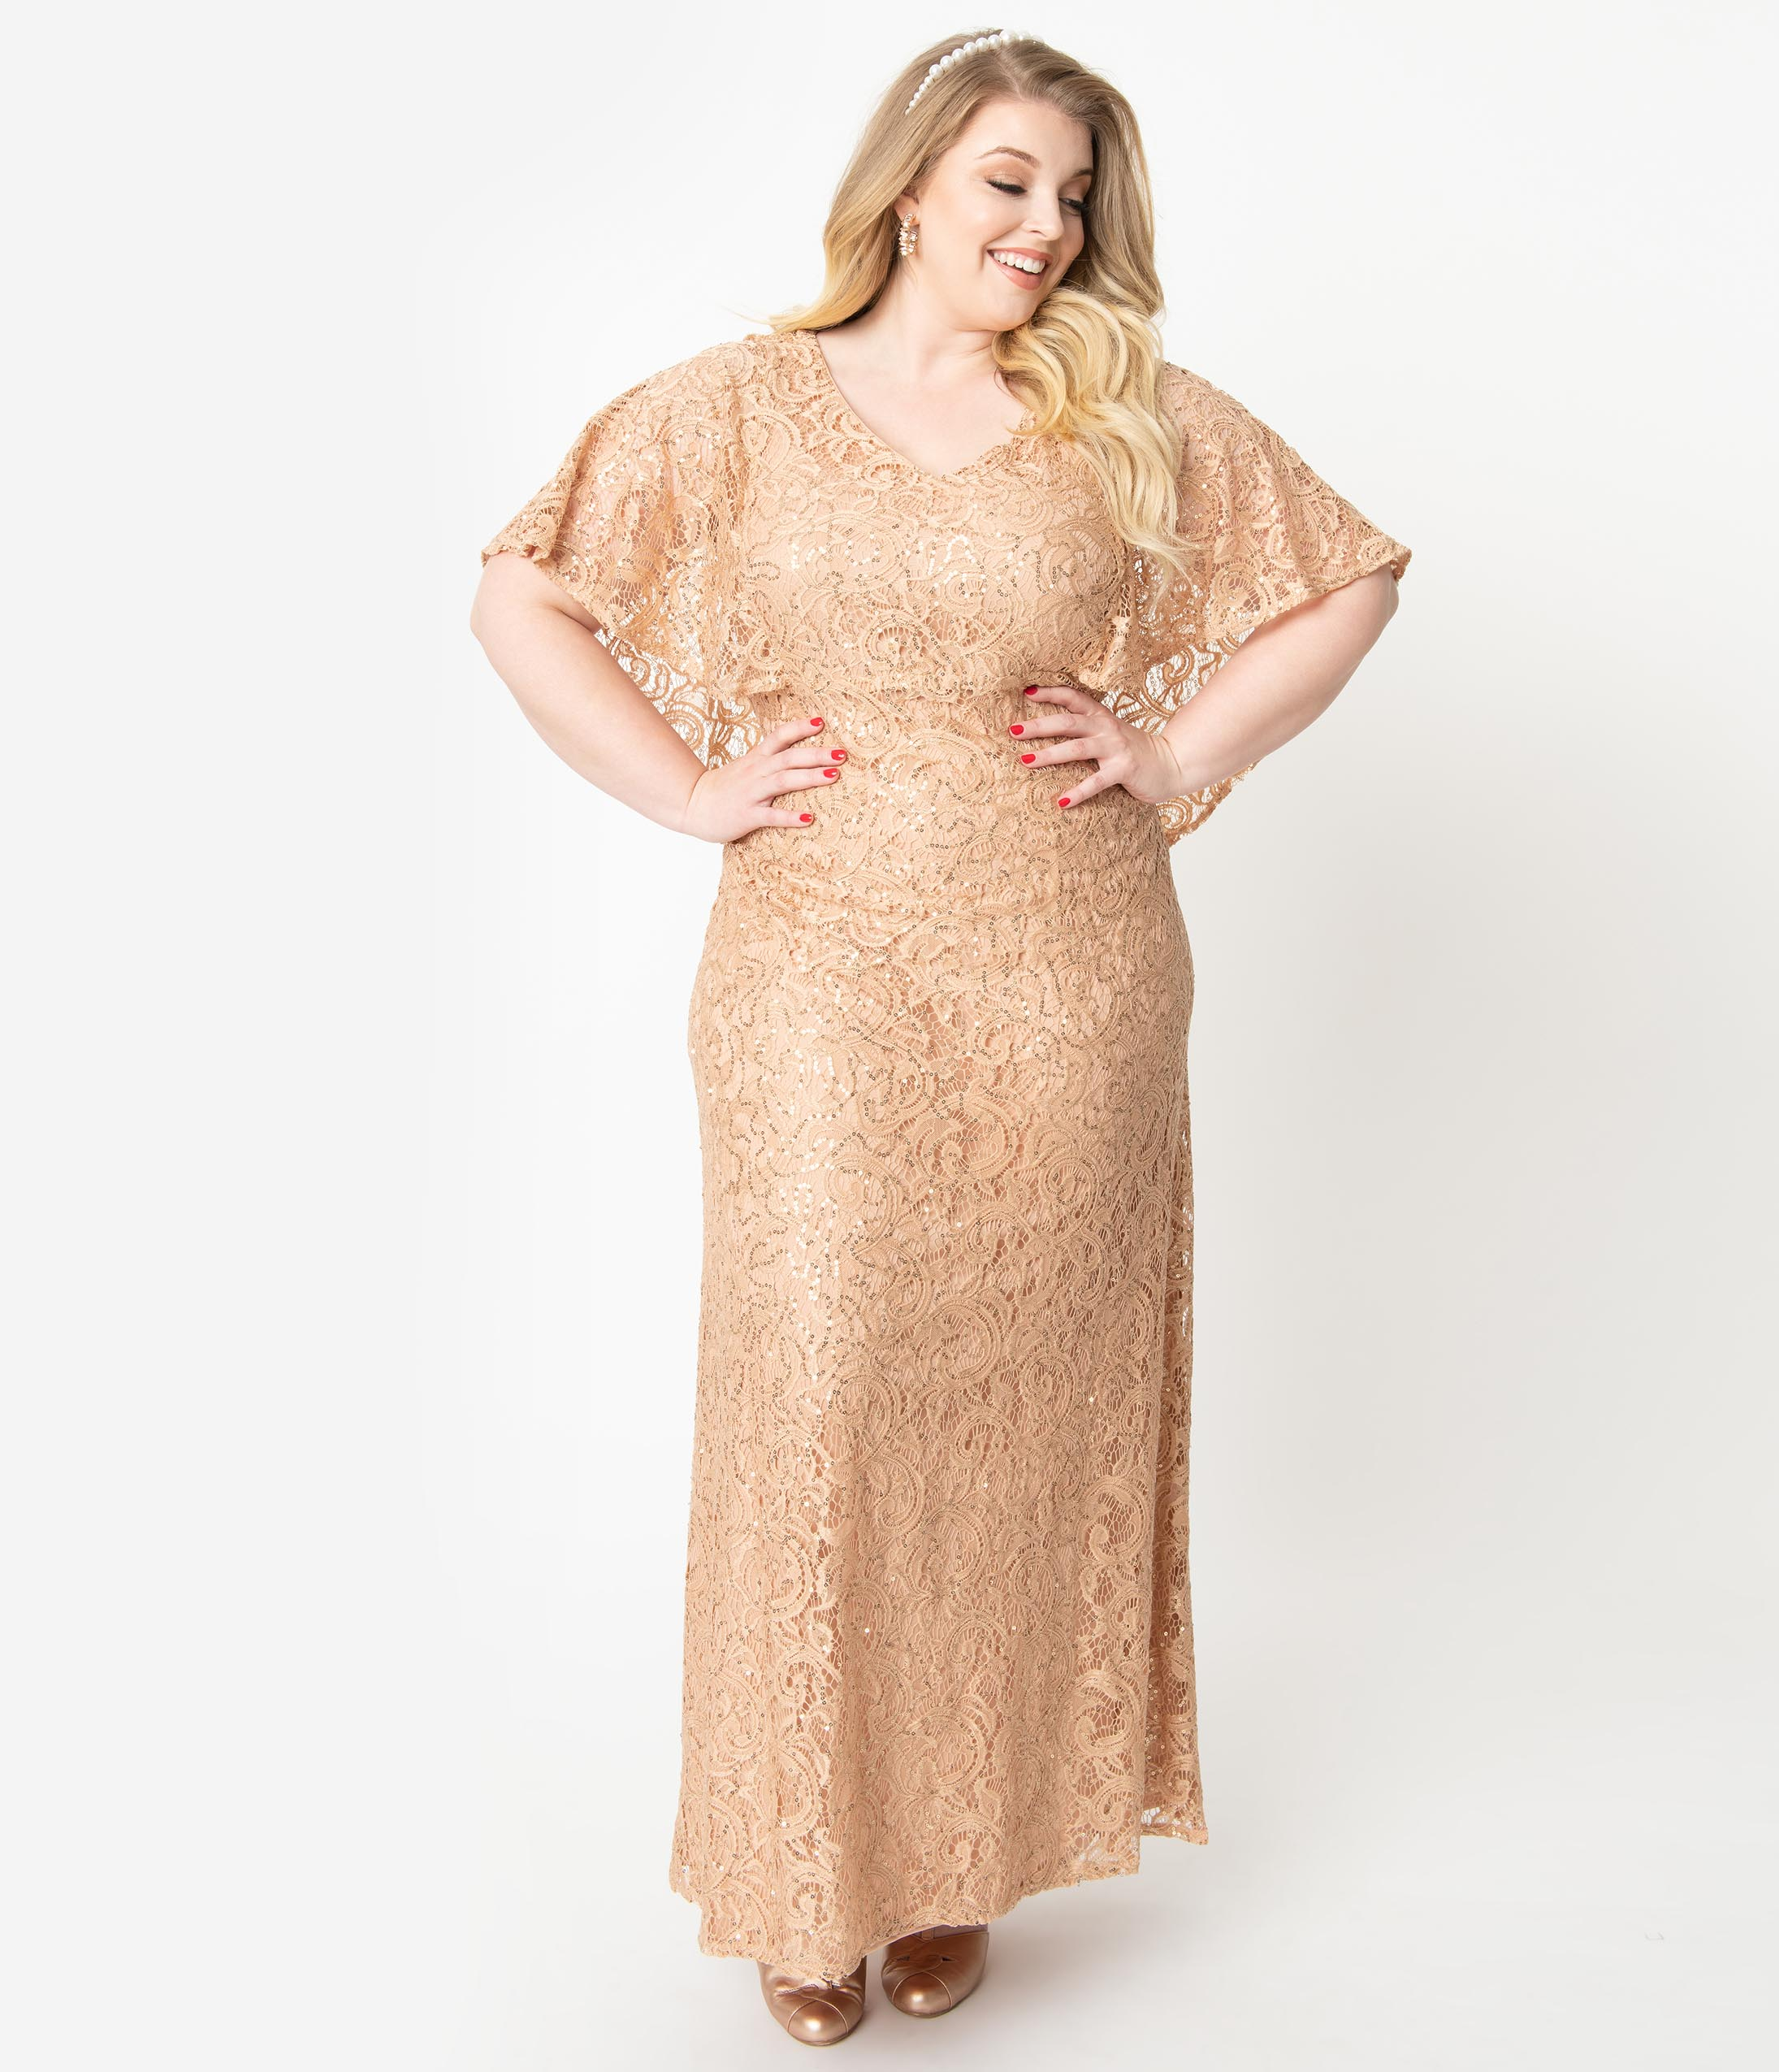 1930s Evening Dresses | Old Hollywood Silver Screen Dresses Plus Size Champagne Sequin Lace Cape Sleeve Celestial Gown $328.00 AT vintagedancer.com